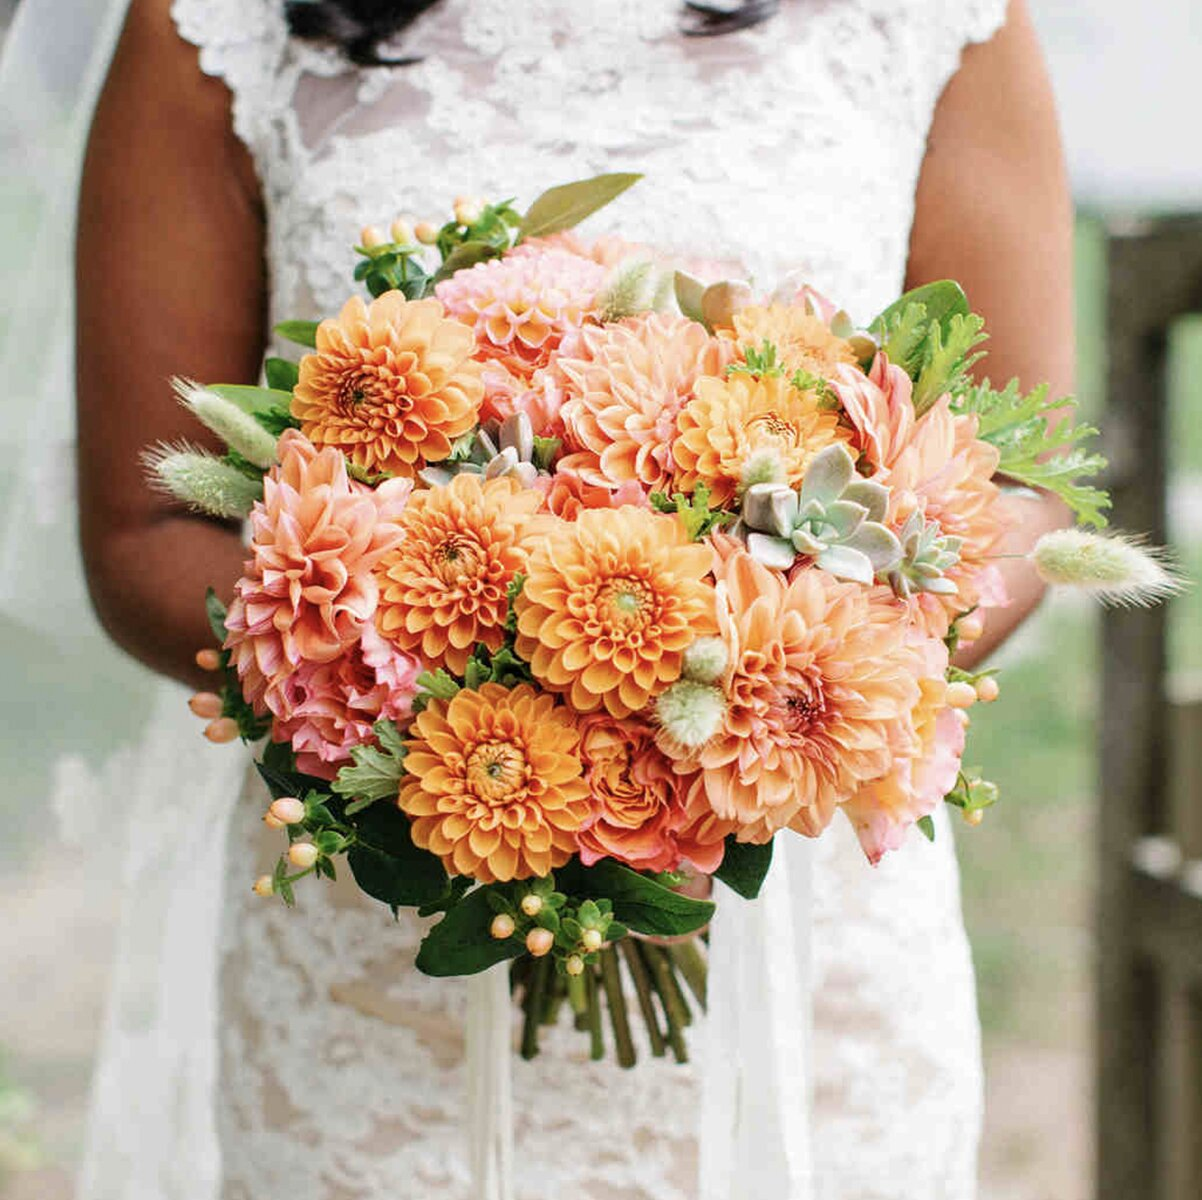 wedding-bouquet-packages-sydney-flowers-price